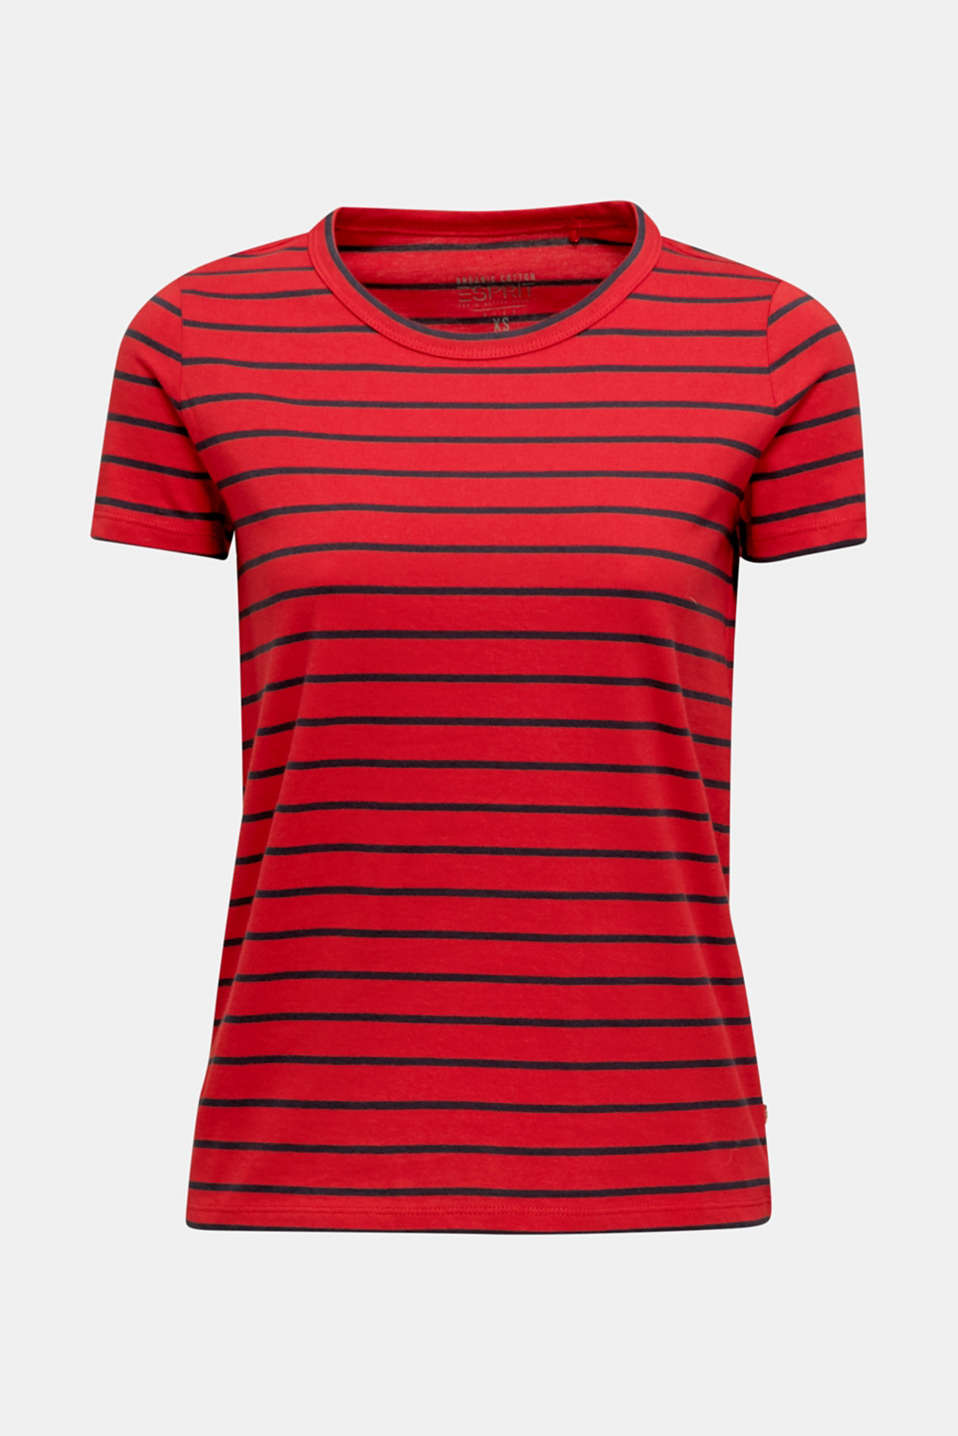 T-shirt with stripes, 100% cotton, DARK RED, detail image number 6